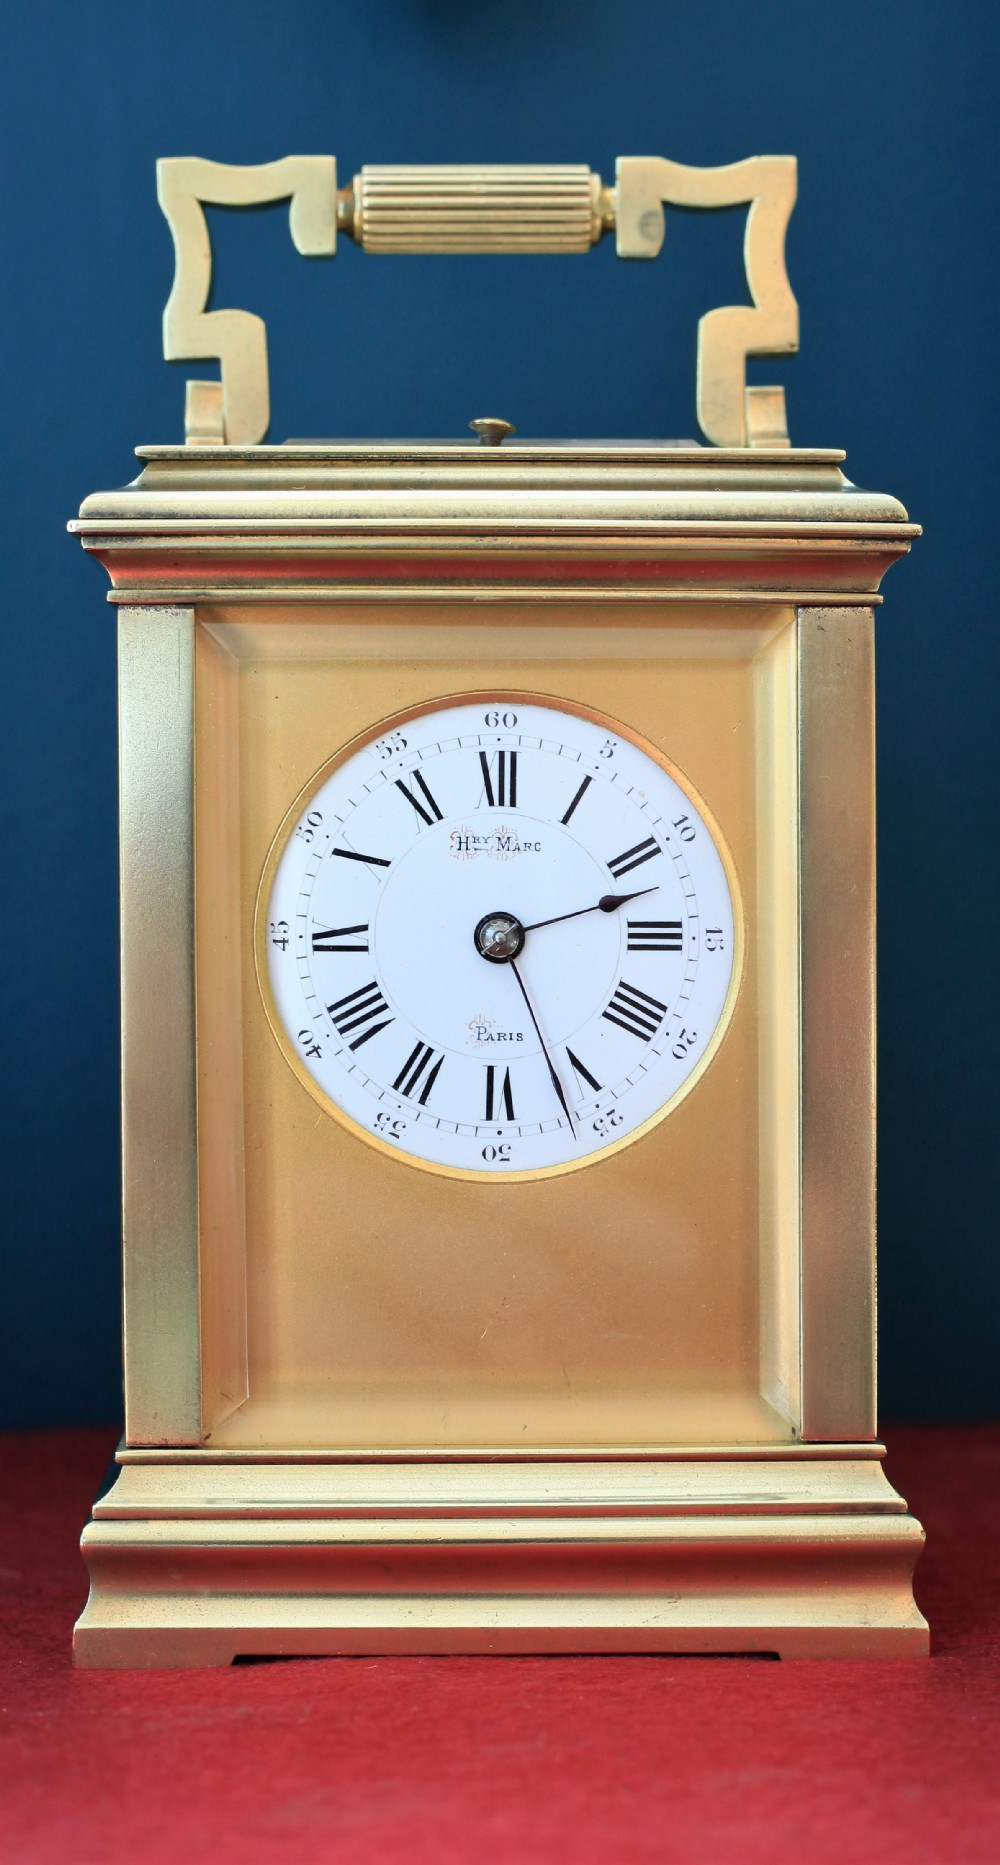 a mid 19th century matt gilt strikerepeat carriage clock by henri marc henry